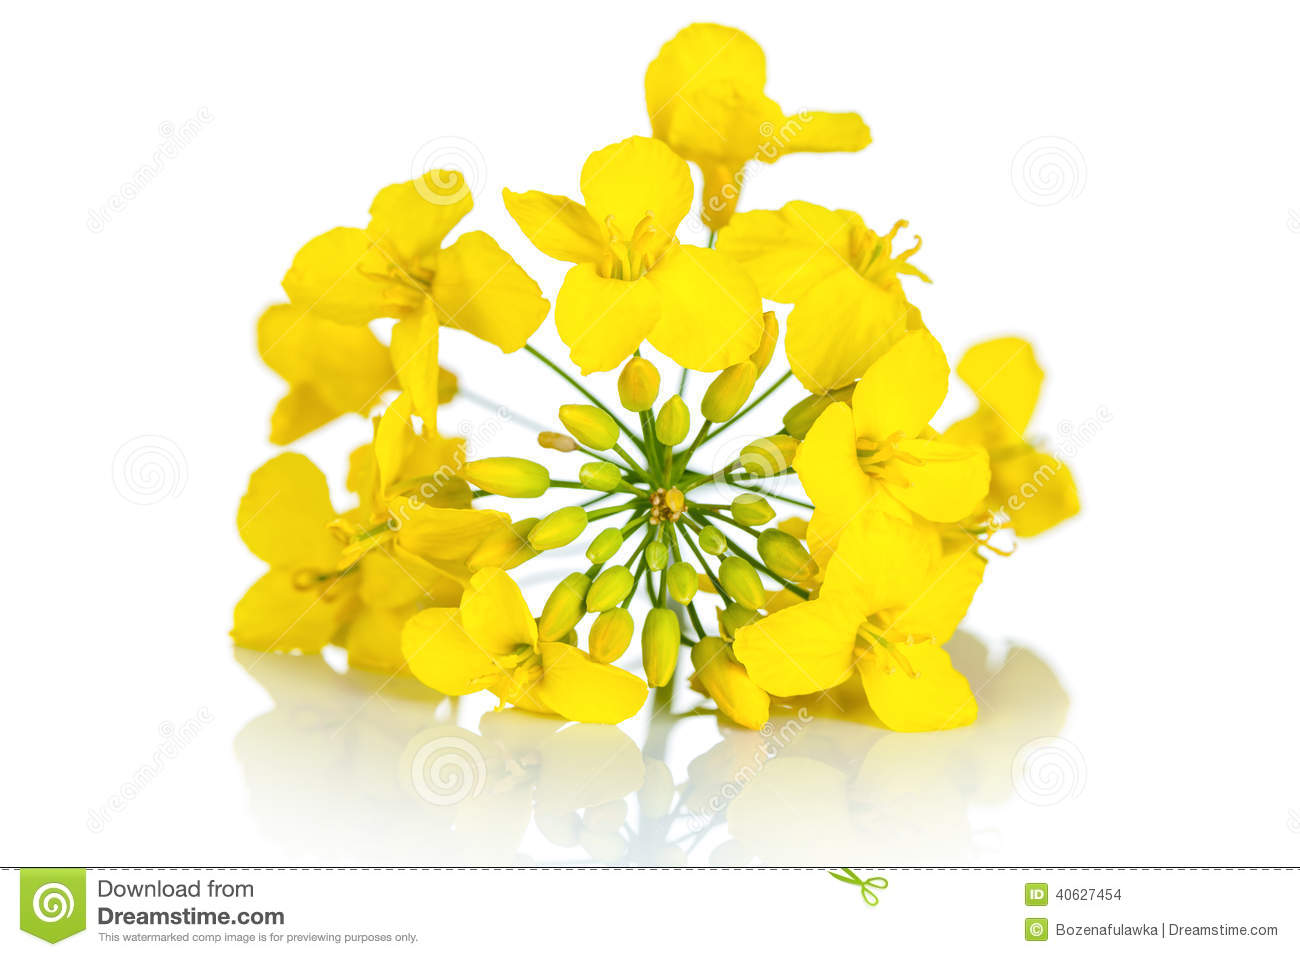 Rapeseed clipart #16, Download drawings